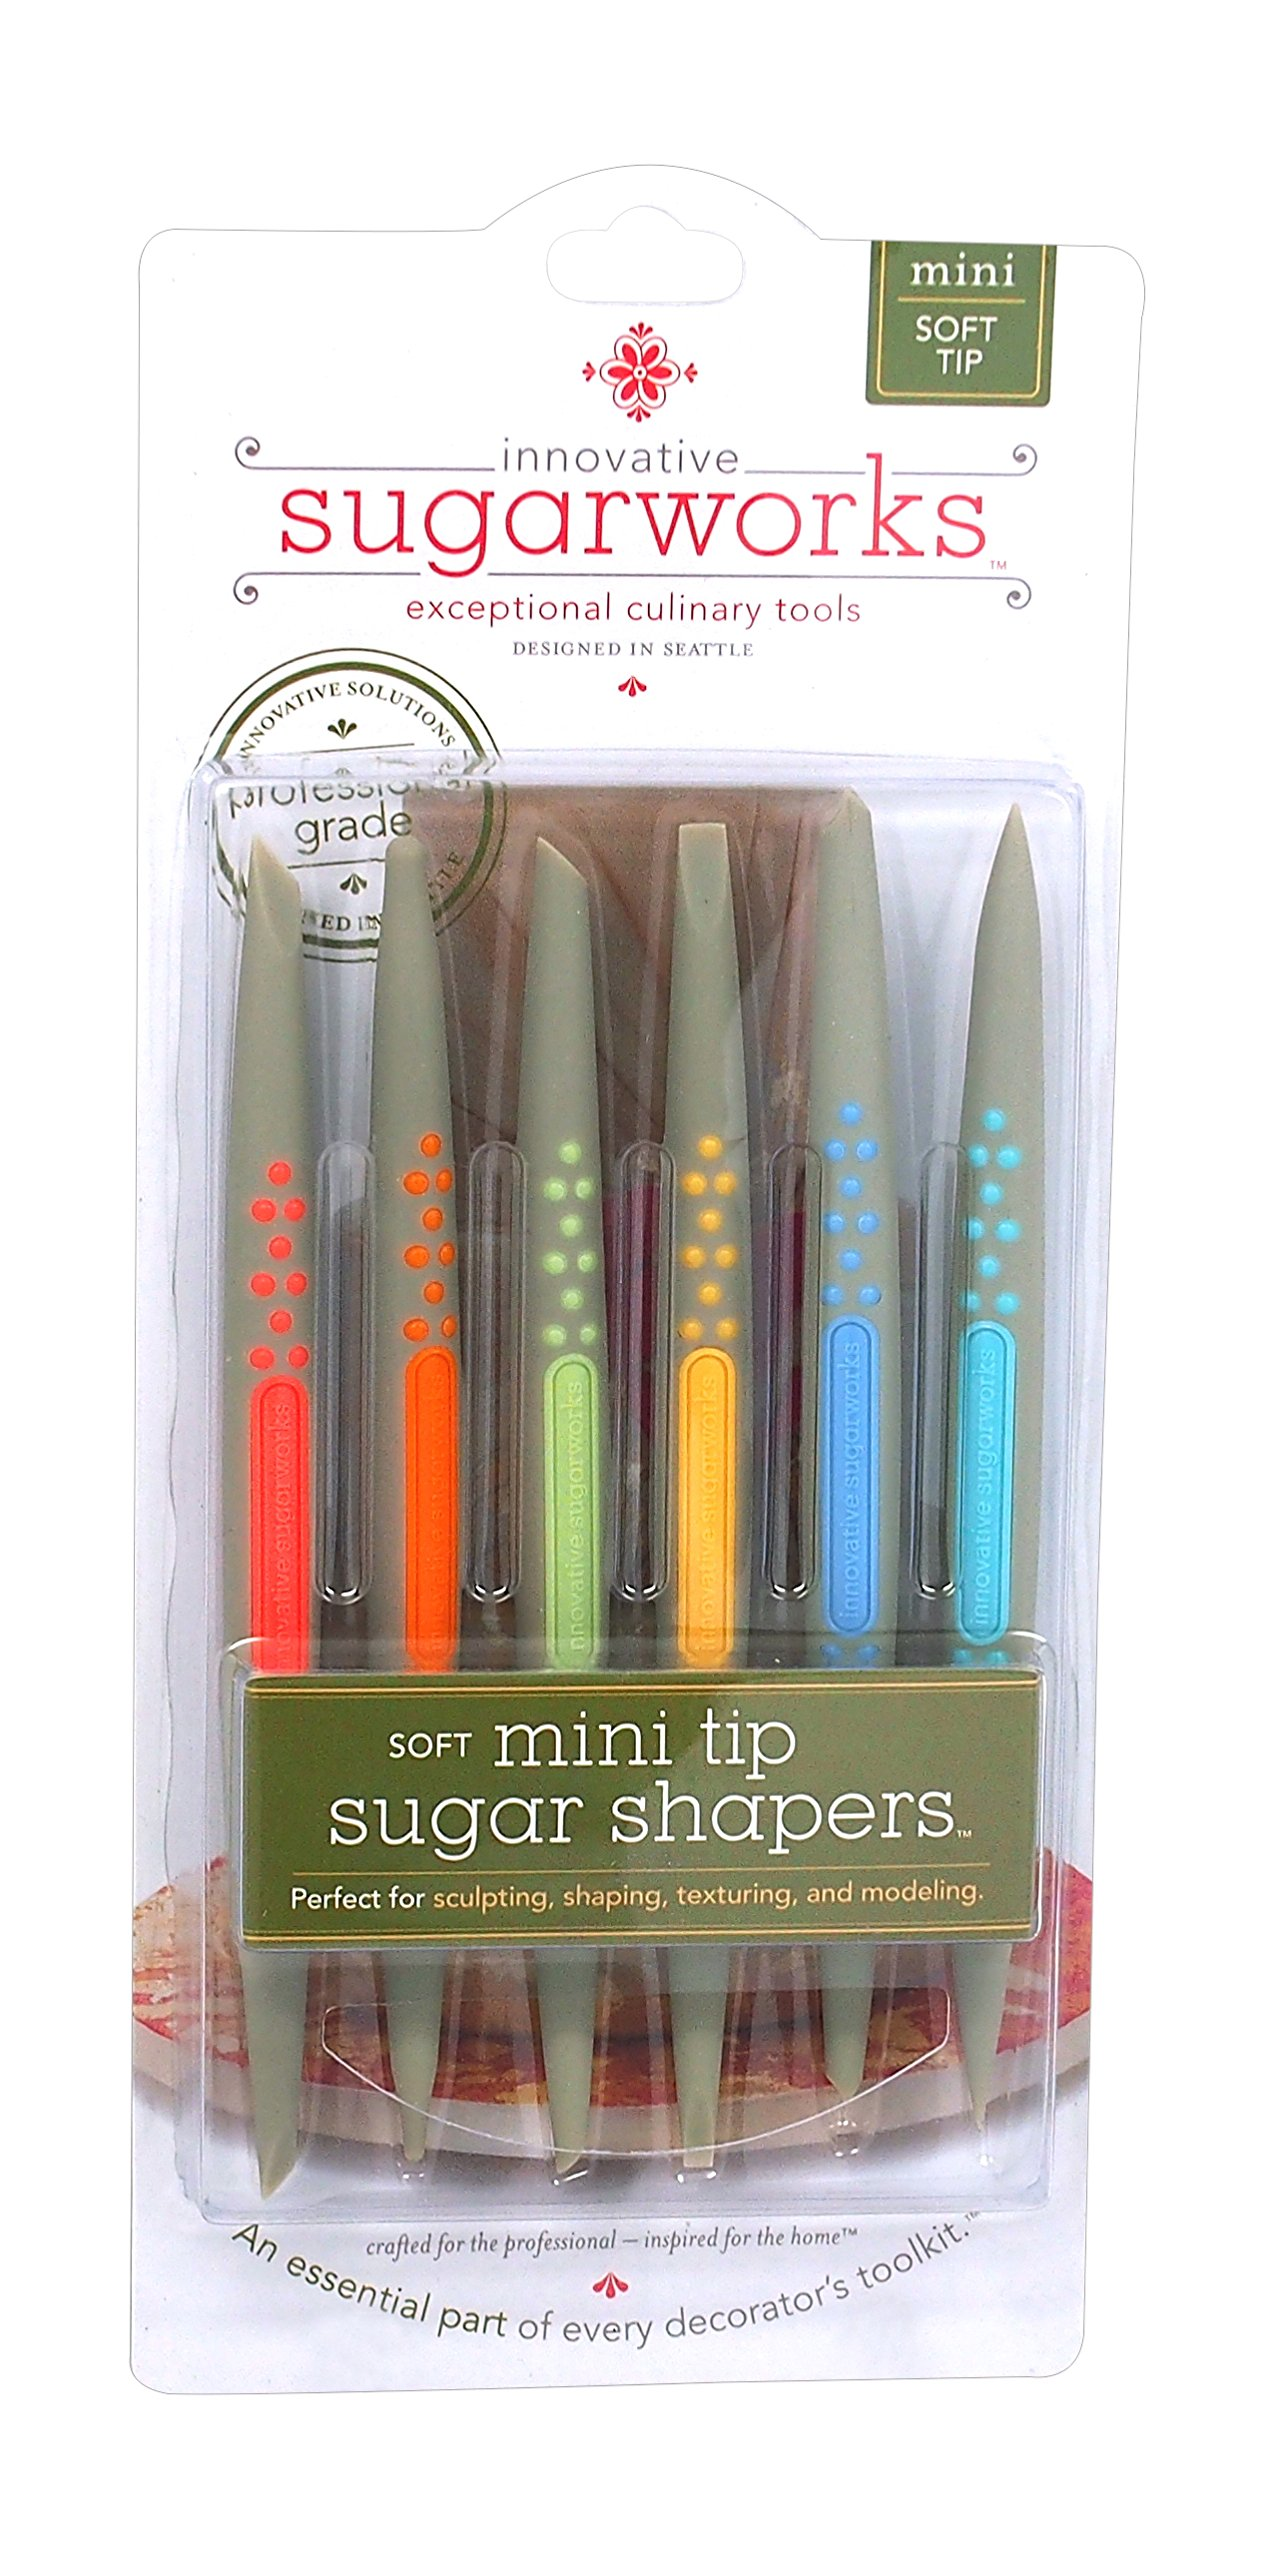 Innovative Sugarworks Sugar Shapers Fondant Cake Decorating Unique Tools, for Sugarcraft, Gum Paste, Modeling Chocolate (Pack of 6), Soft Tip, Mini